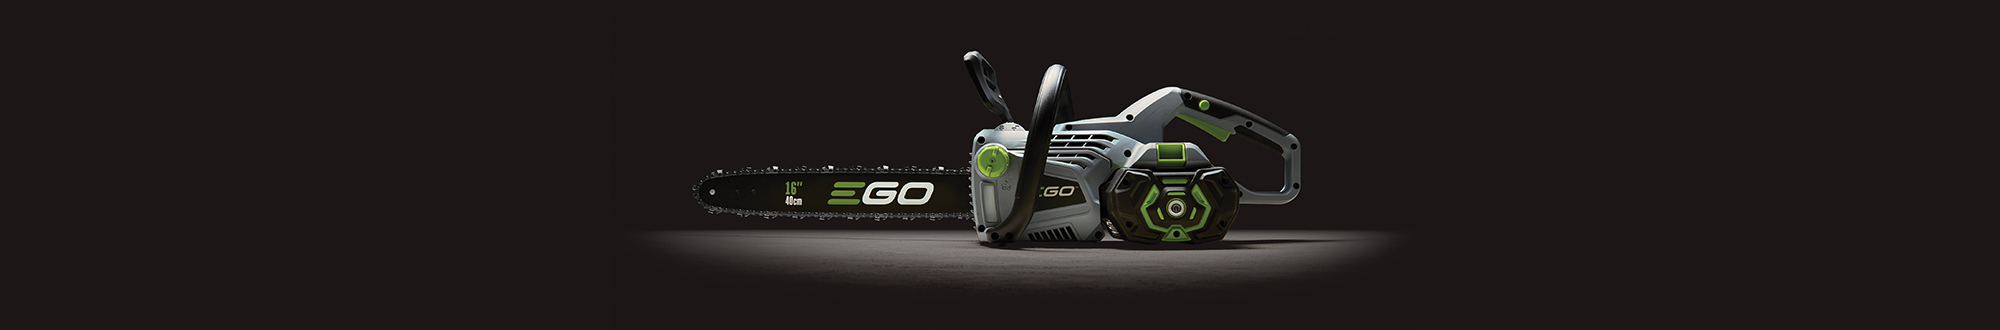 Ego Power Plus - Ego Power+  gamma di prodotti